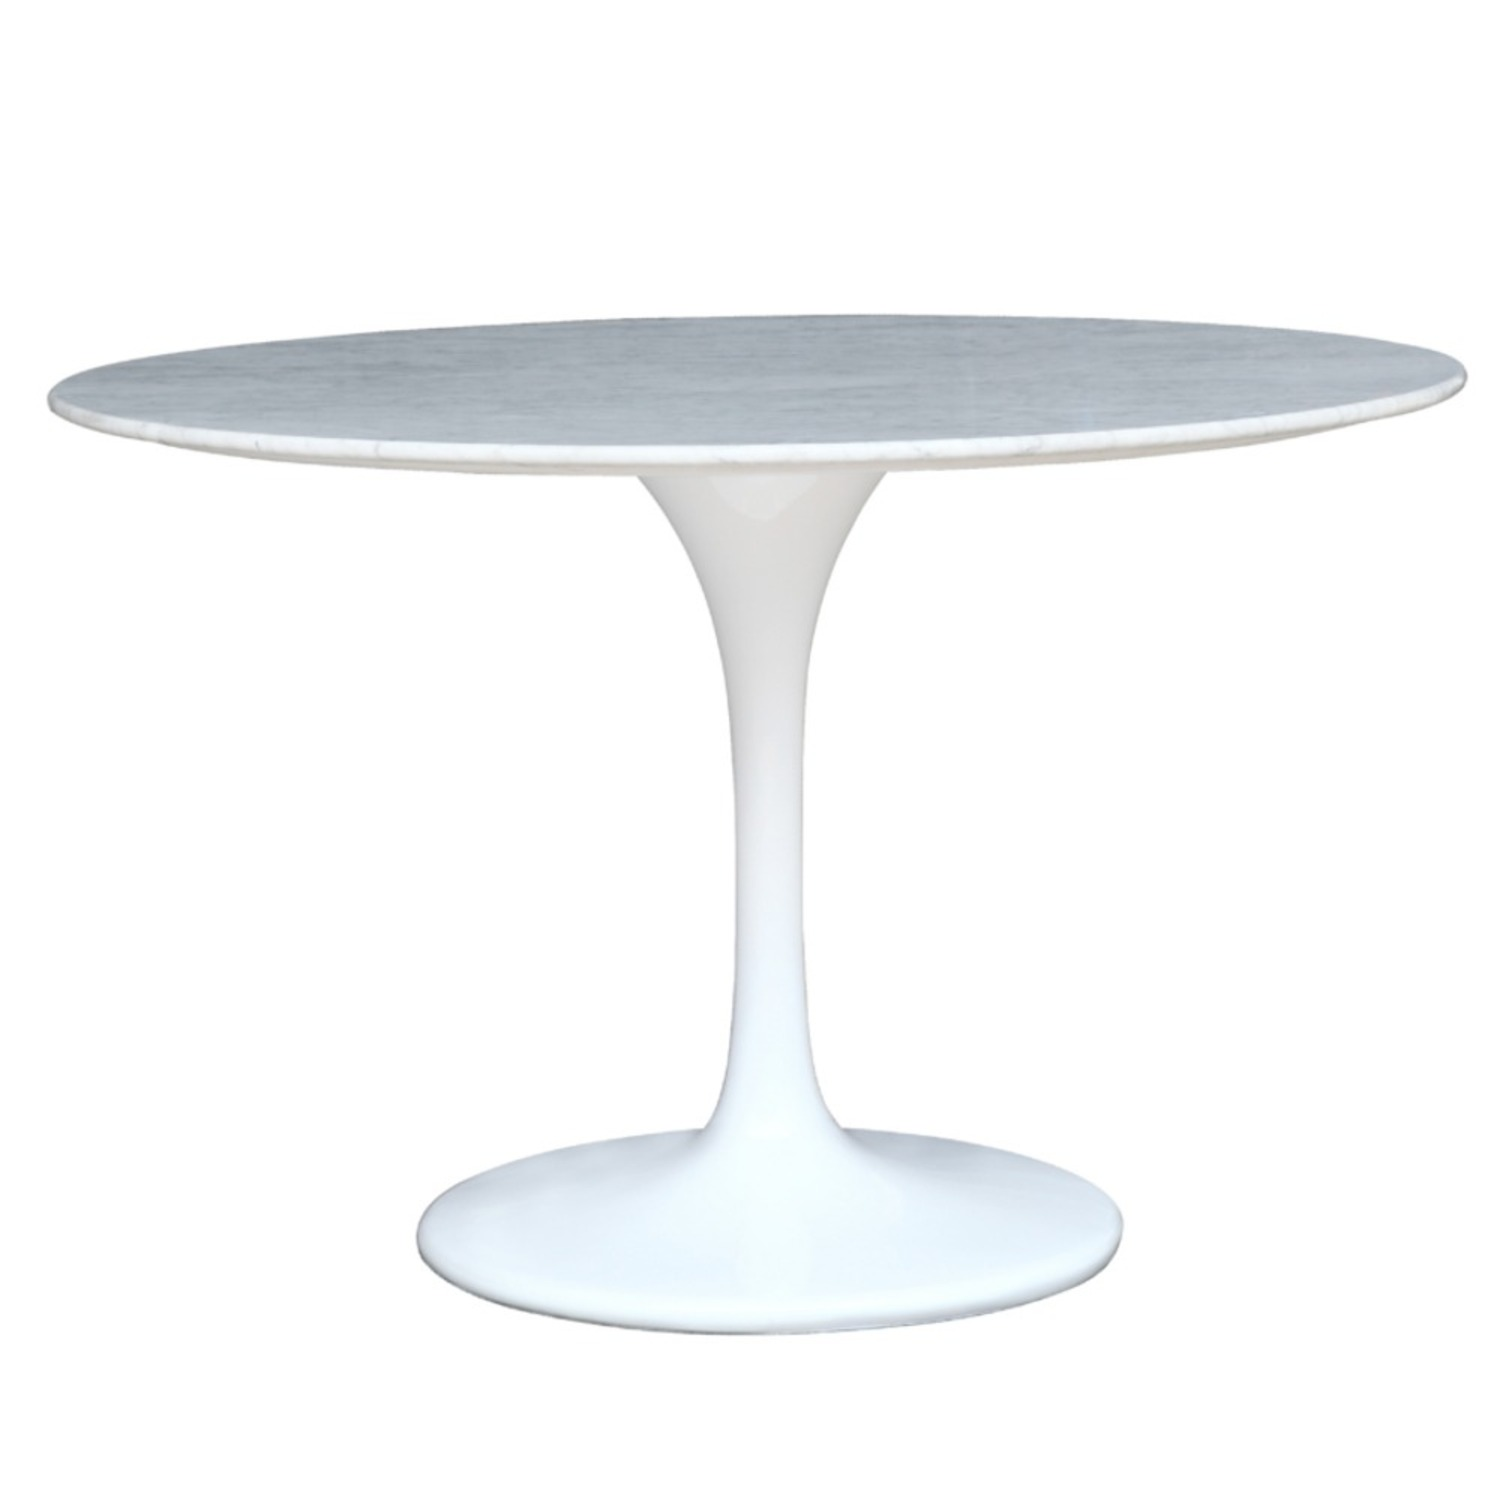 32-Inches Dining Table In White Faux Marble - image-1